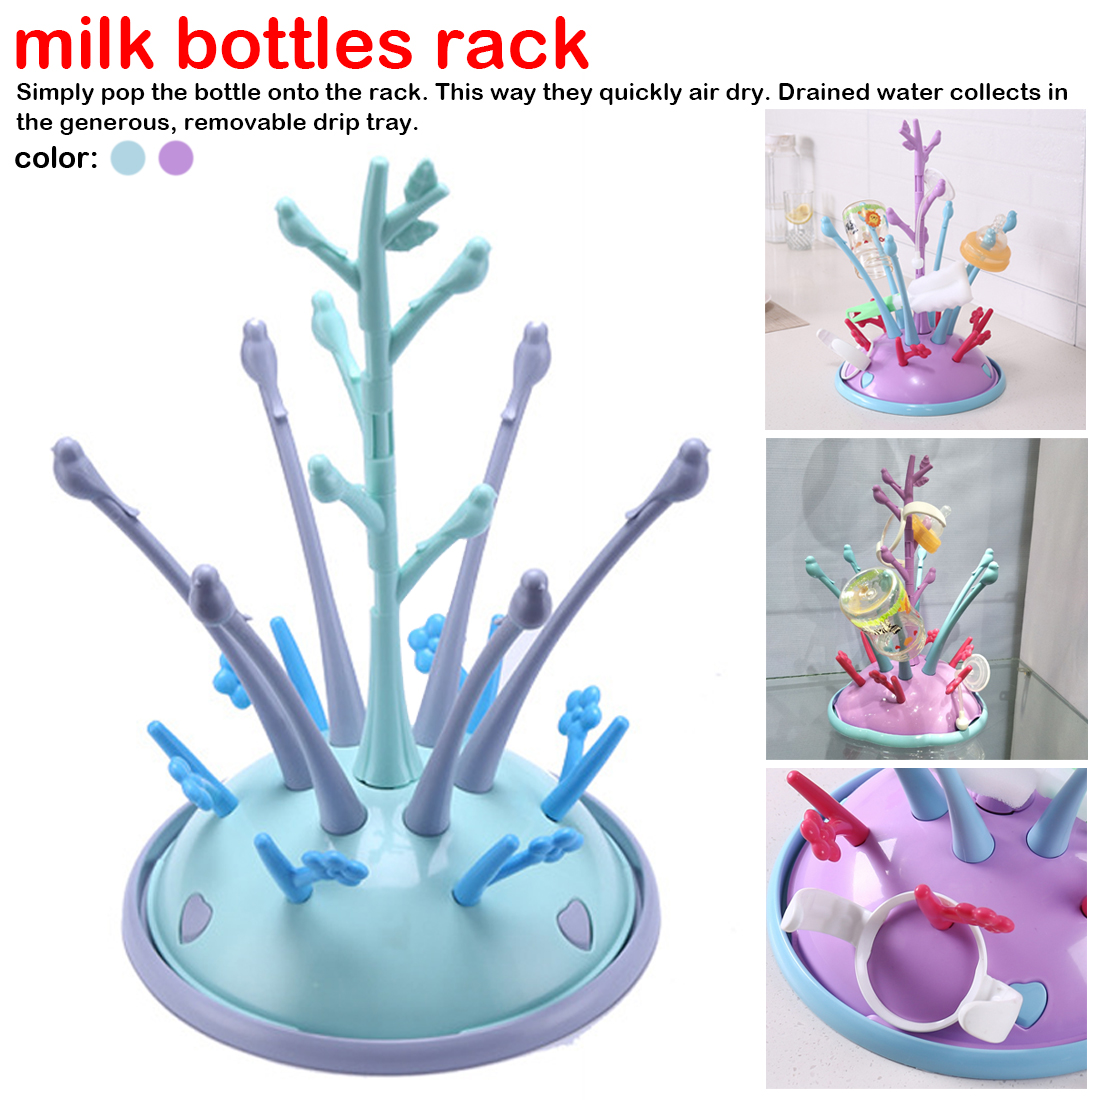 Shape Infant Pacifier Nipple Feeding Cups Cleaning Dryer Portable Baby Bottles Drying Rack Drainer Bottle Holder Tree